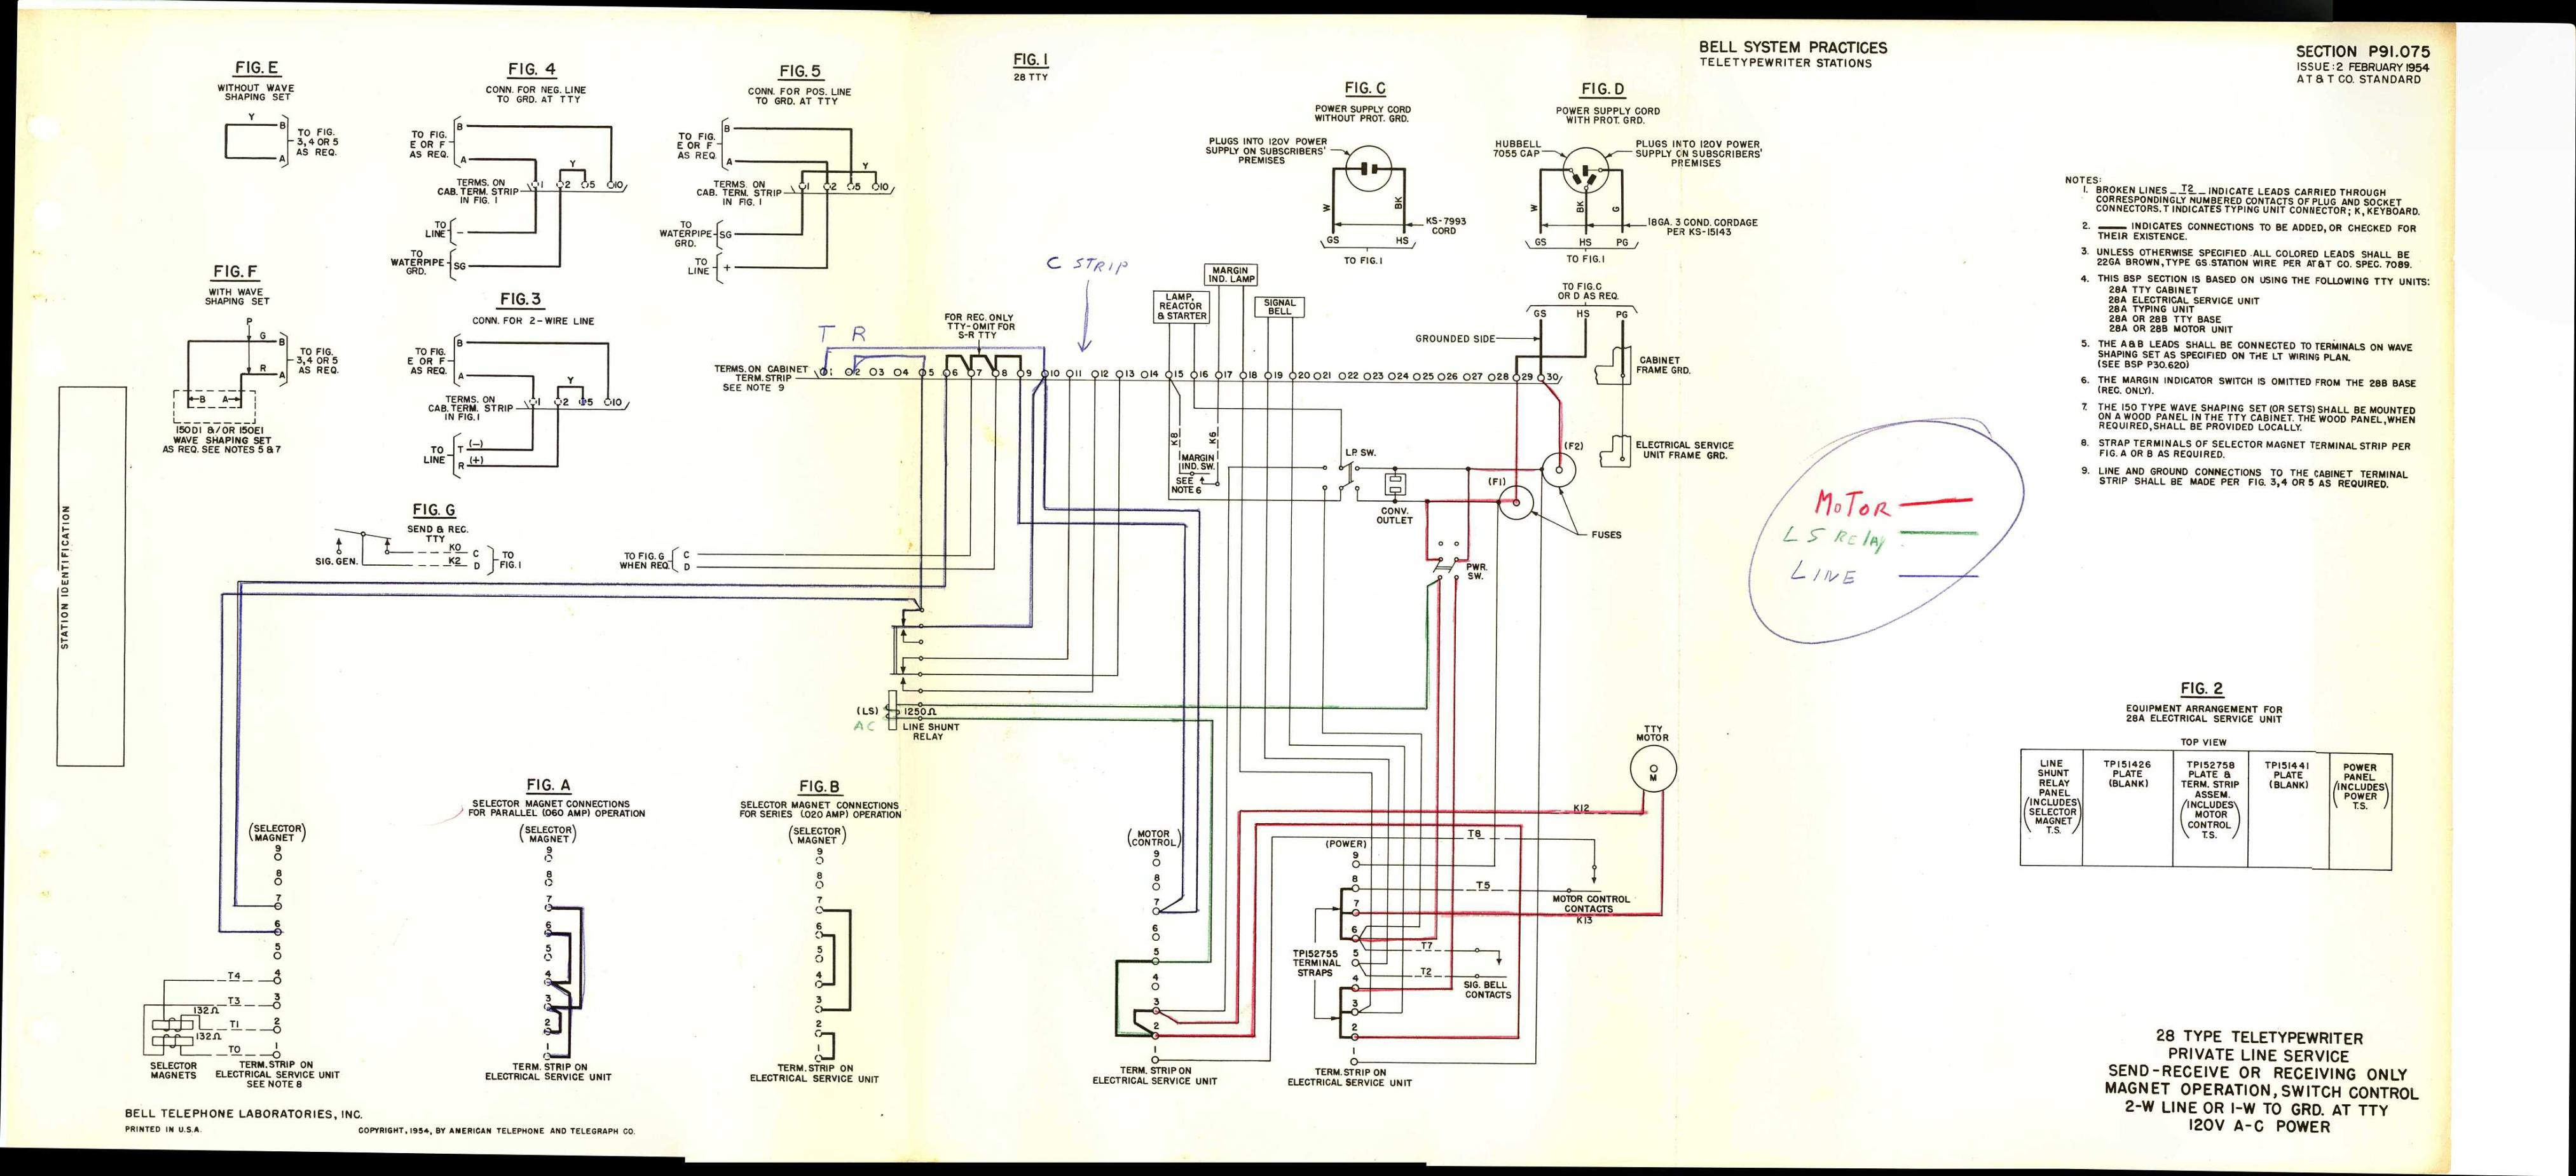 110 sub panel wiring diagram solar light teletype corp. maintenance, installation, operation, and parts publications